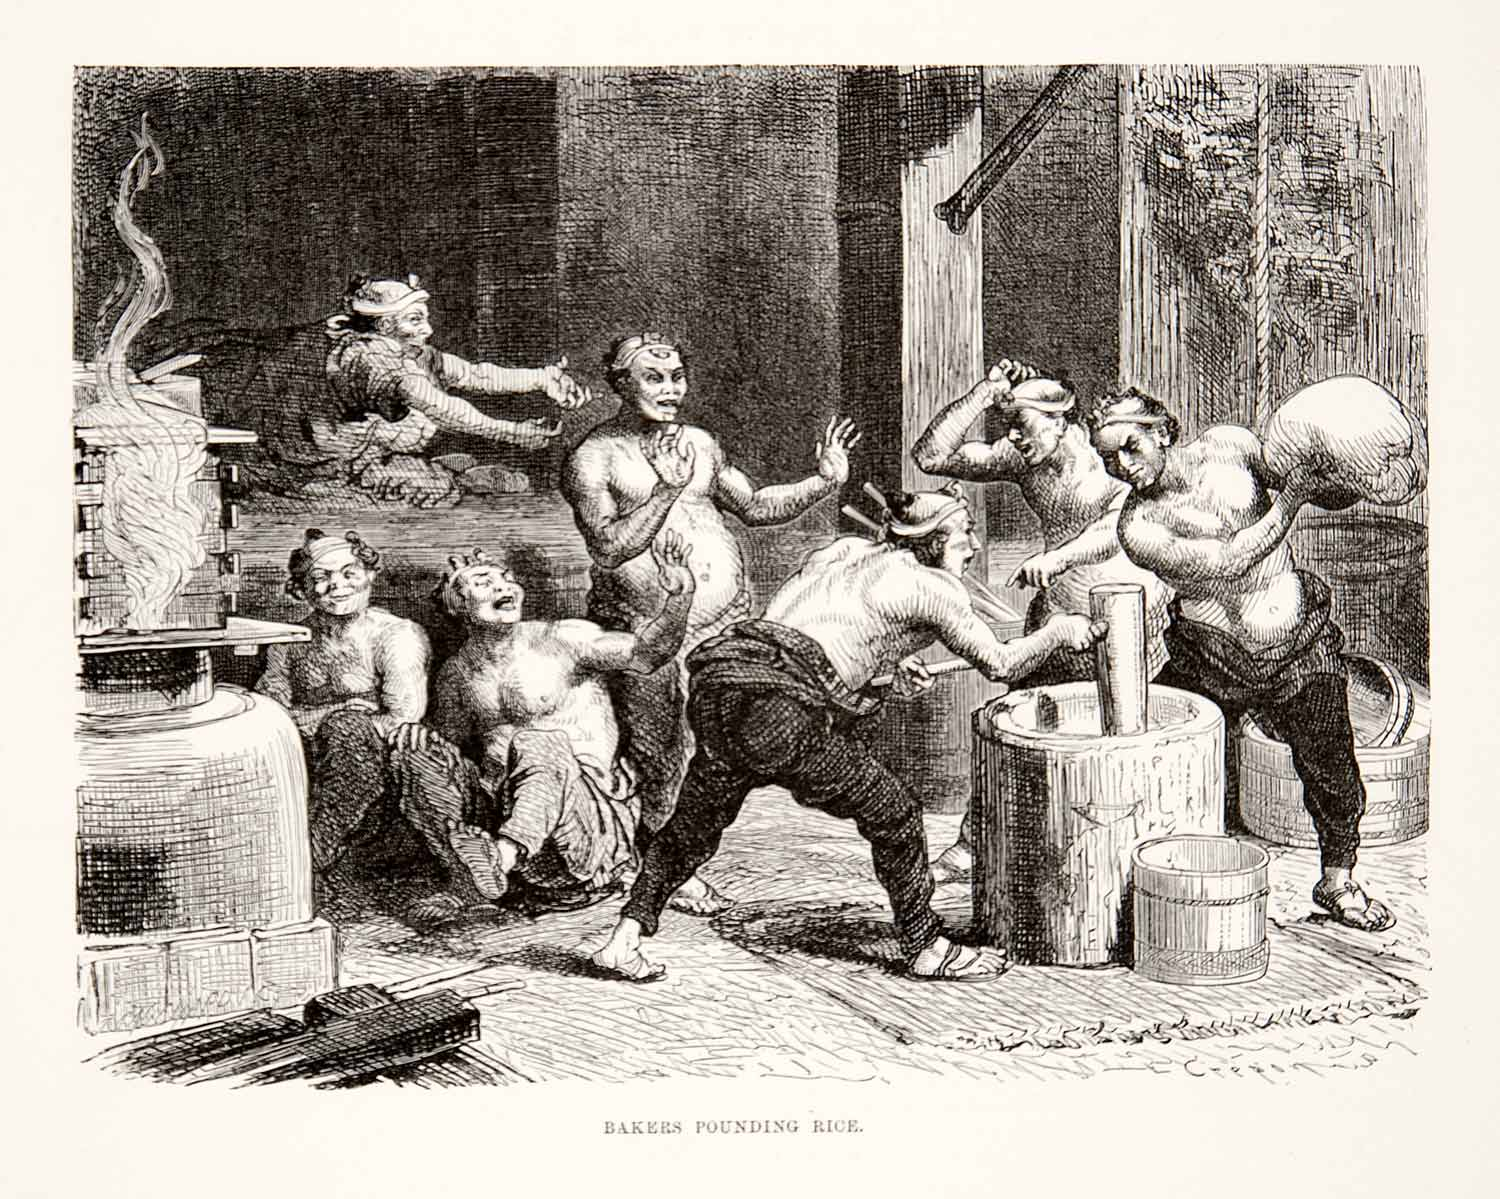 1874 Wood Engraving Japan Japanese Bakers Pounding Rice Mill Workers Mochi  XGHC8